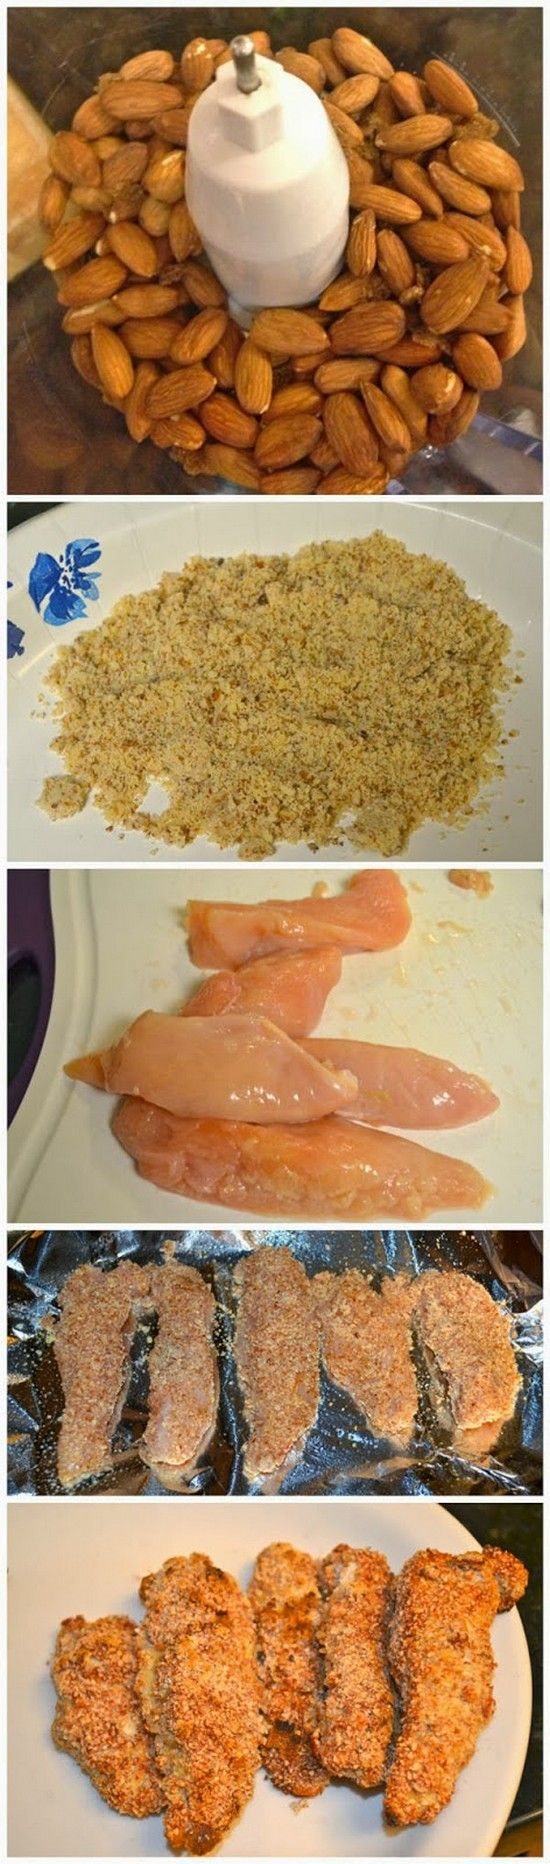 Almond Crusted Chicken Tenders | This is one of my favorite alternatives to chicken tenders, the almonds offer a super tasty nutty flavor. The crunch is just perfect and no frying is necessary! You can serve as a main dish or slice the strips into smaller chunks to throw on top of a salad.